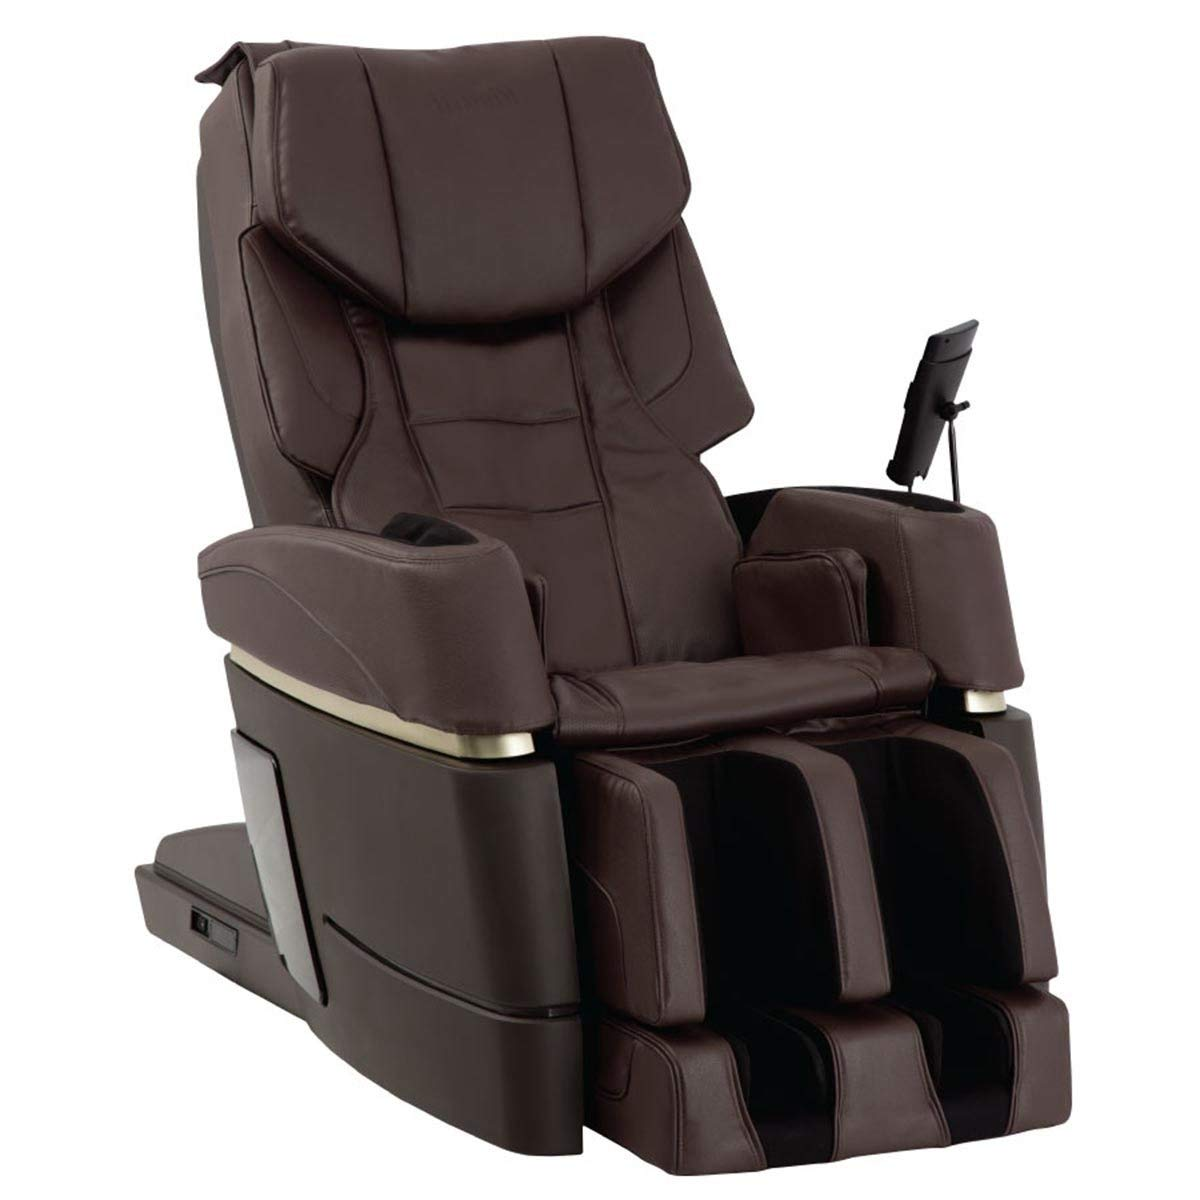 Top 10 Best Japanese Massage ChairReviews in 2020 2